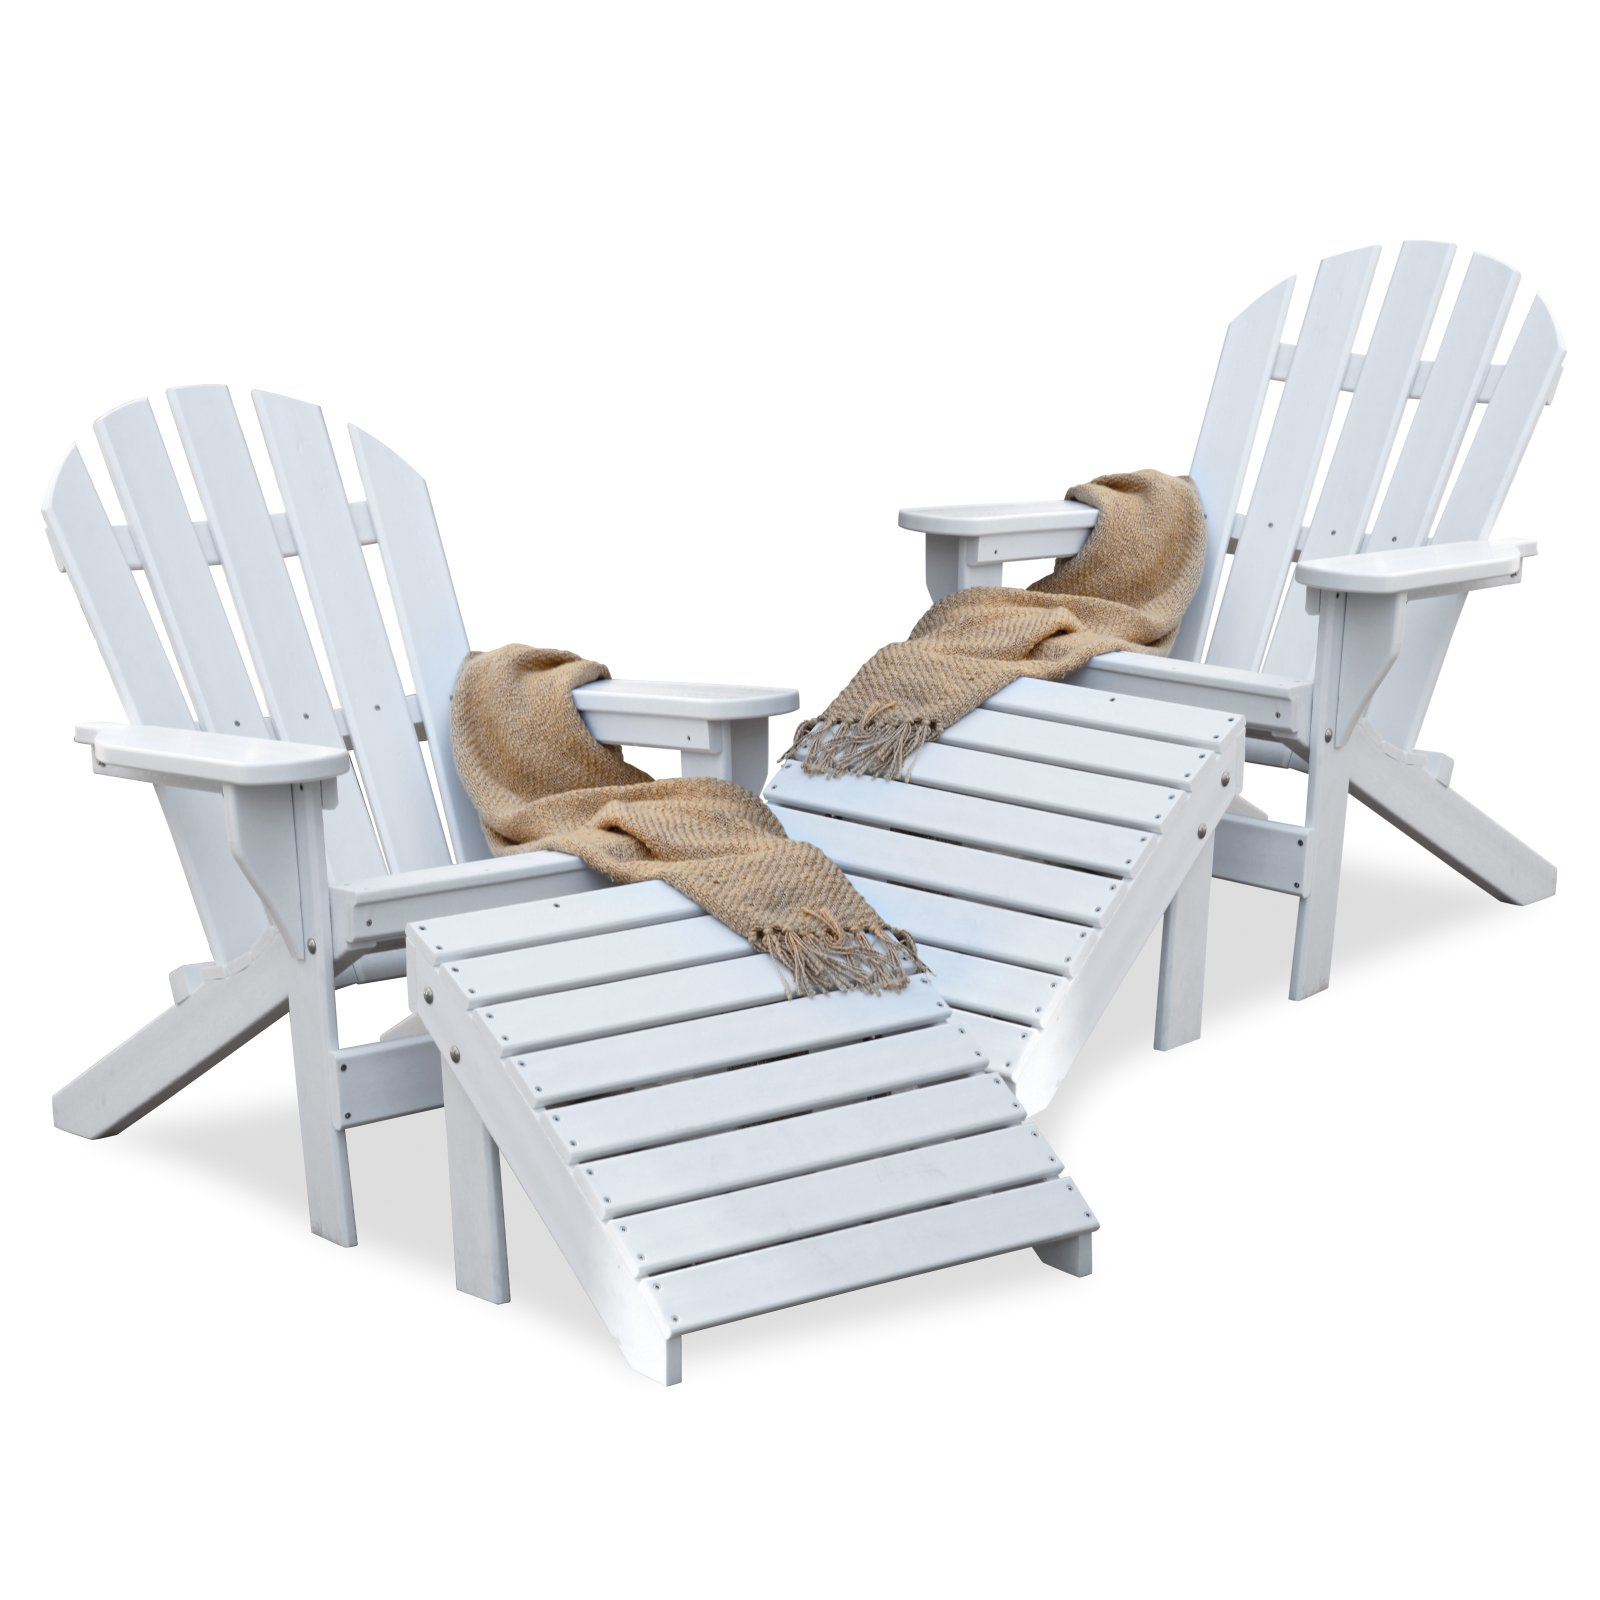 Jayhawk Plastics Recycled Plastic Cape Cod Adirondack Chair Set With Ottomans